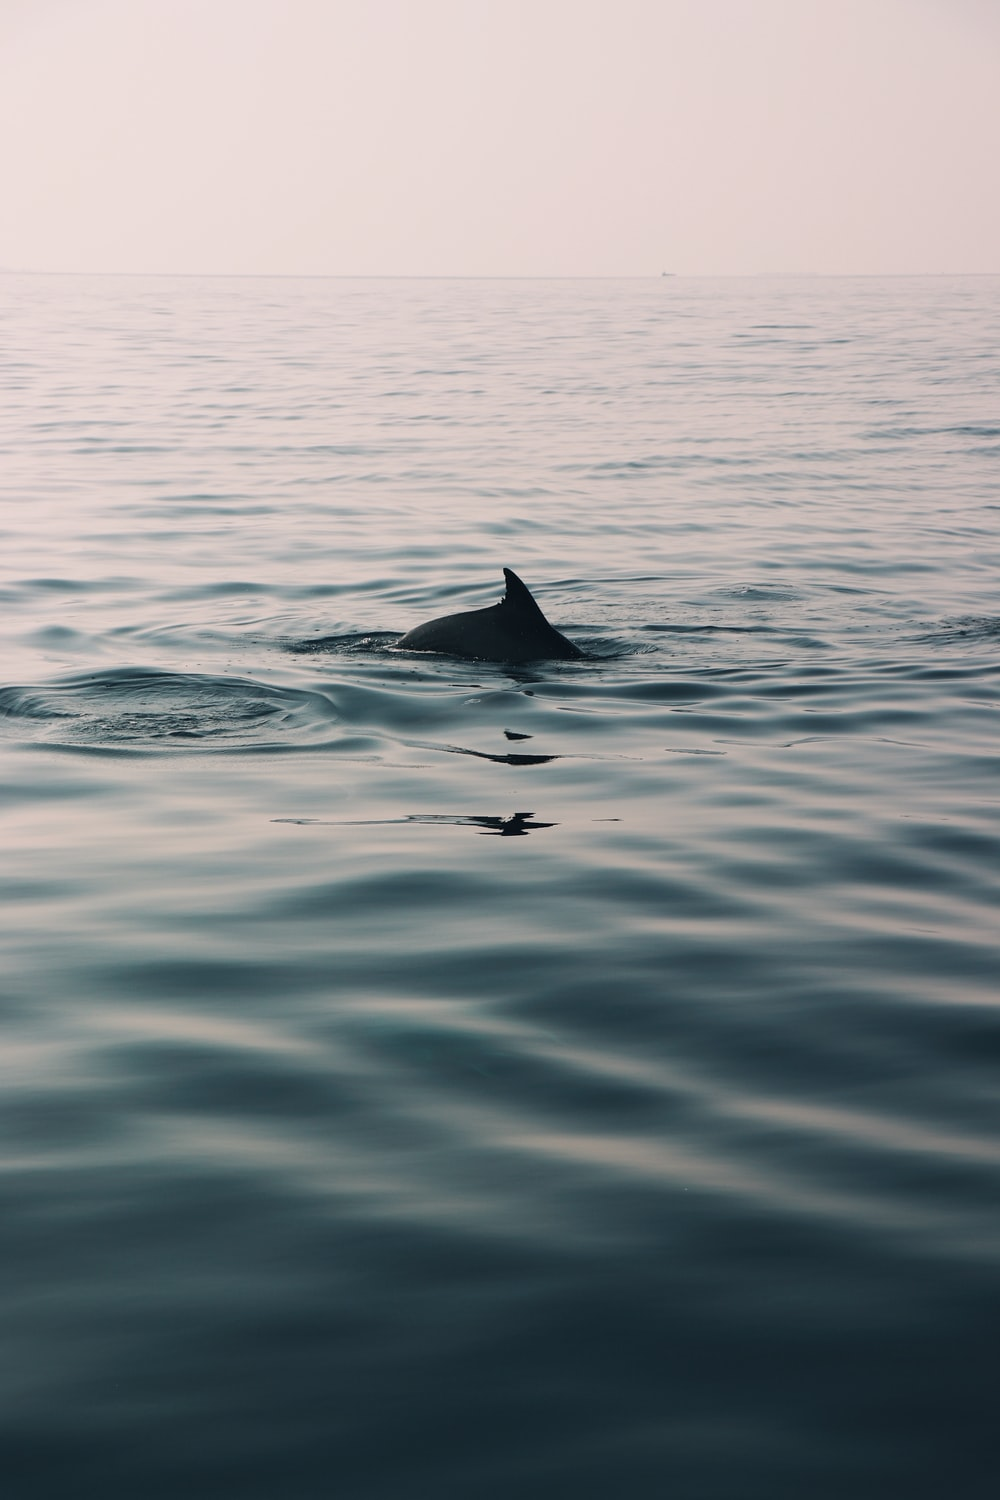 dolphin on calm water during daytime